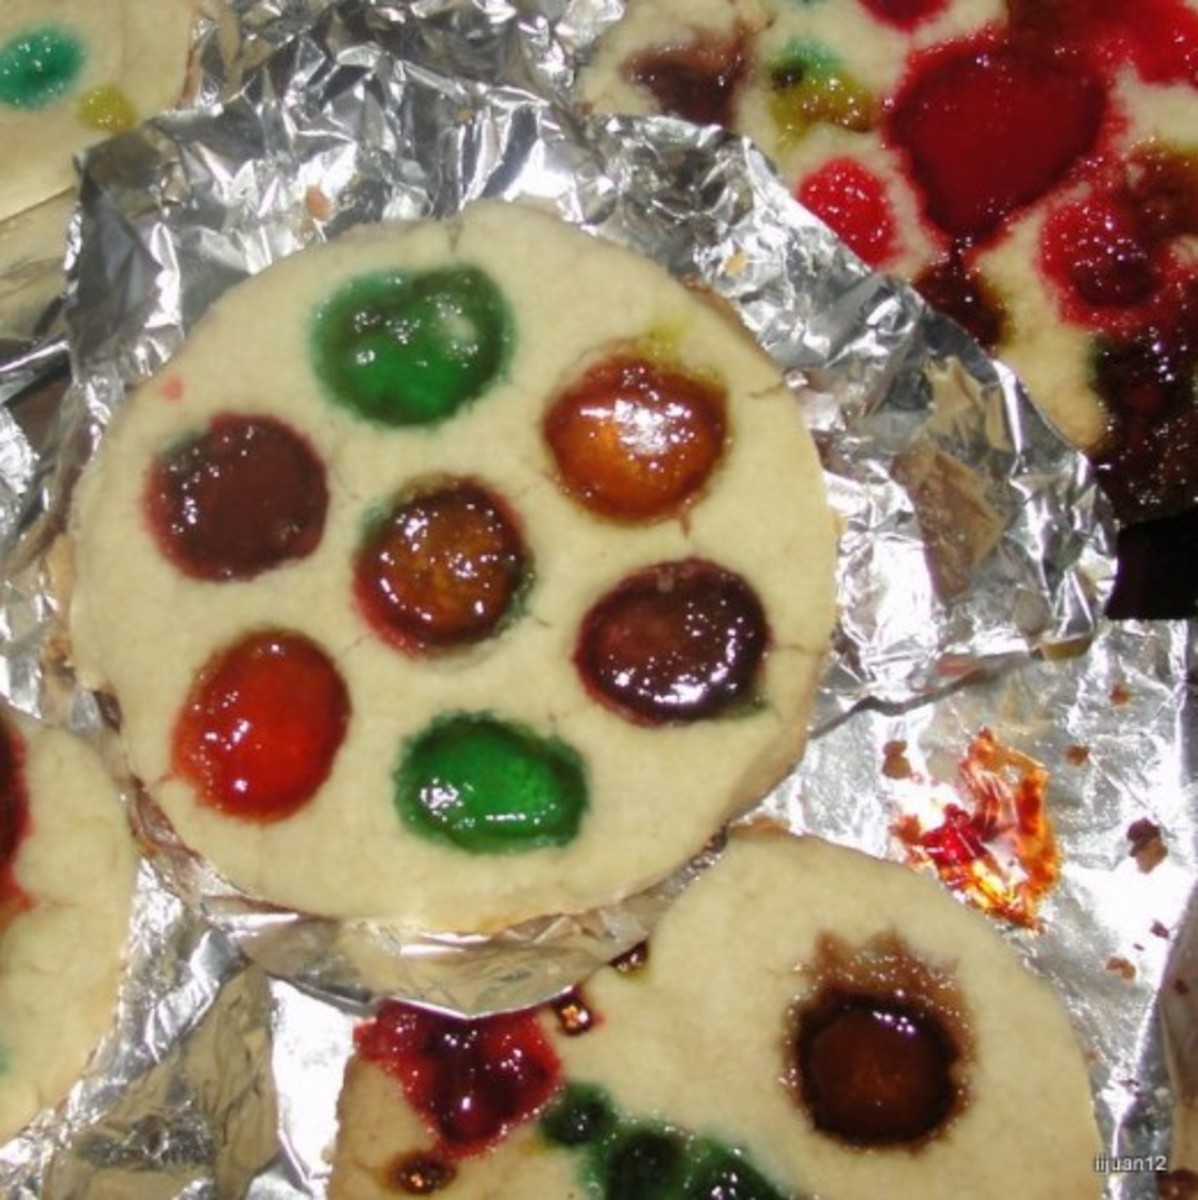 Stained Glass Window Cookies made using sugar cookie dough and crushed Jolly Rancher candy